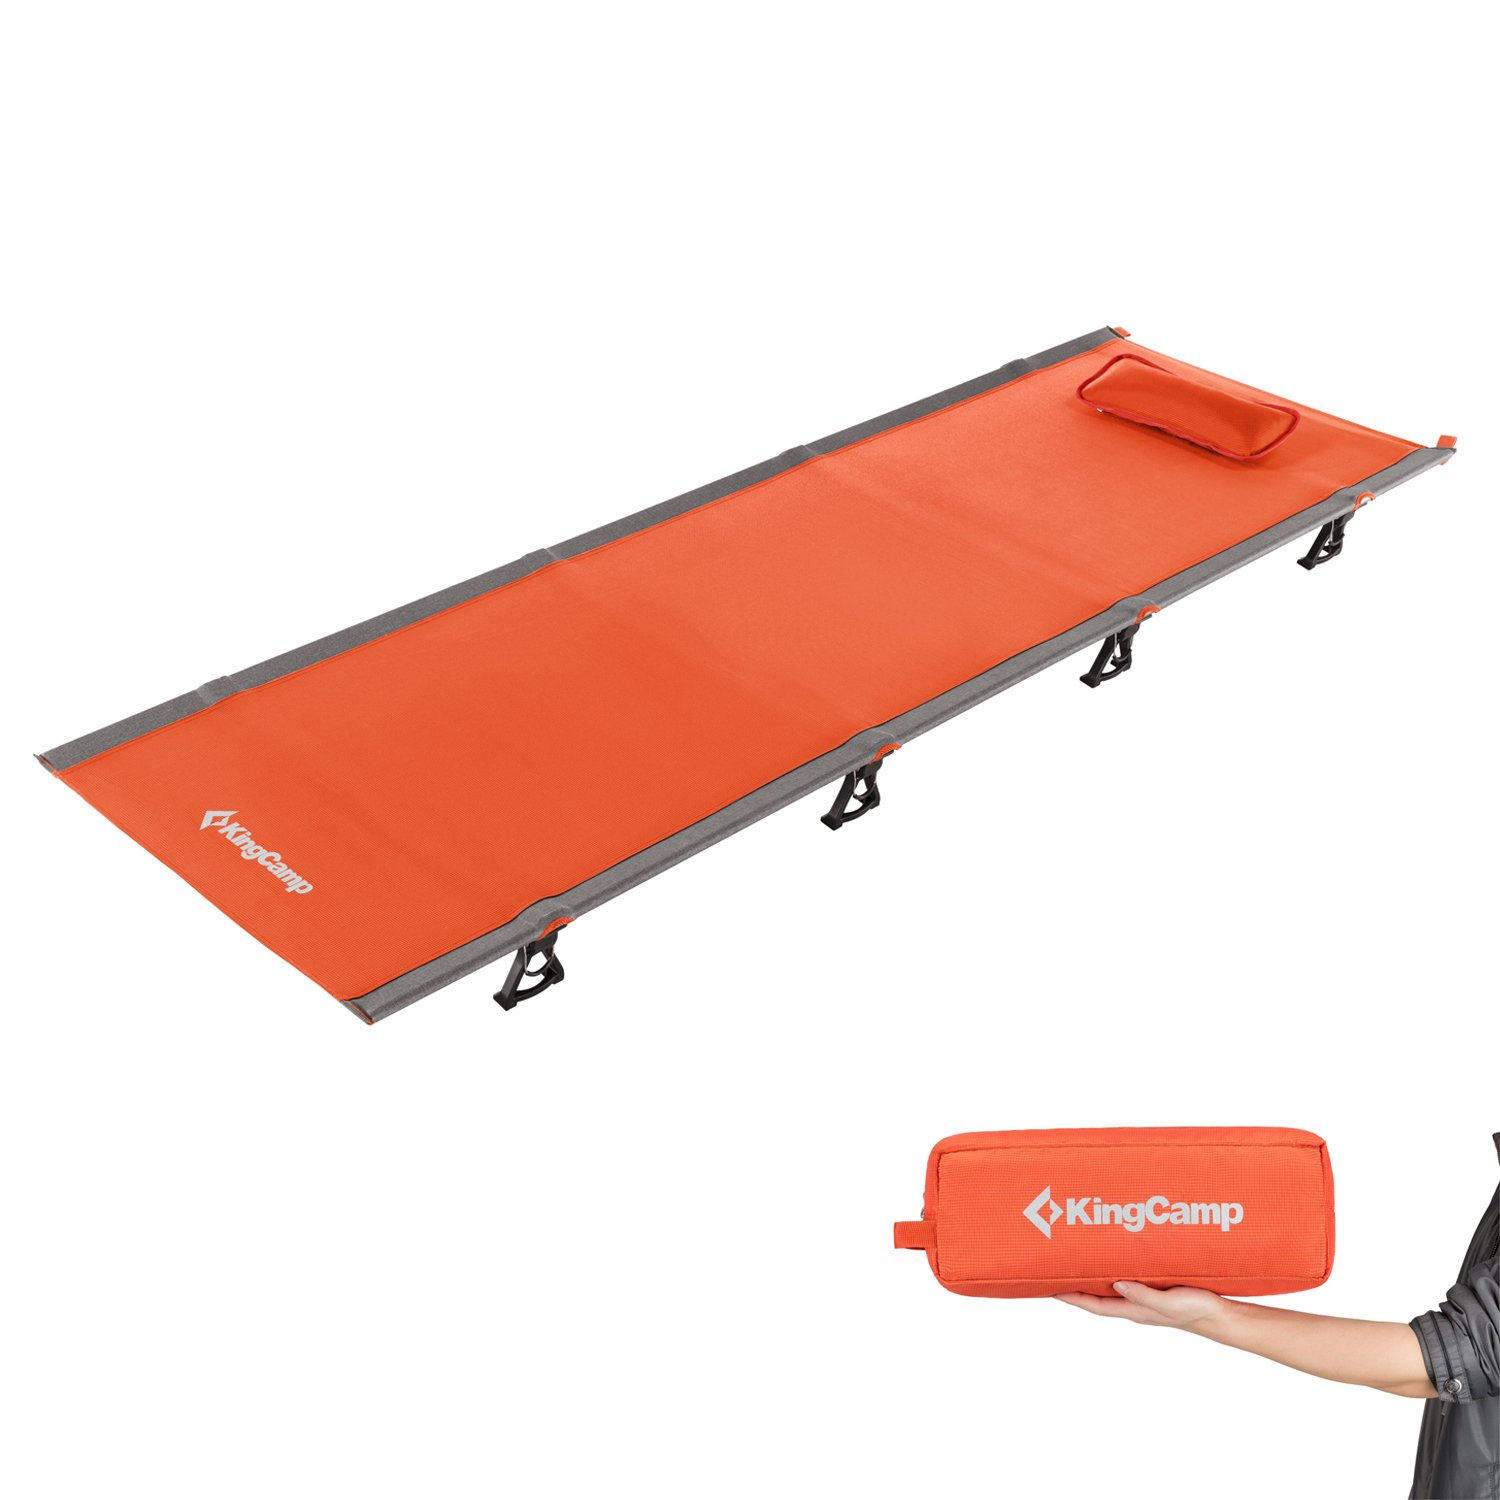 KingCamp Ultralight Compact Folding Camping Cot